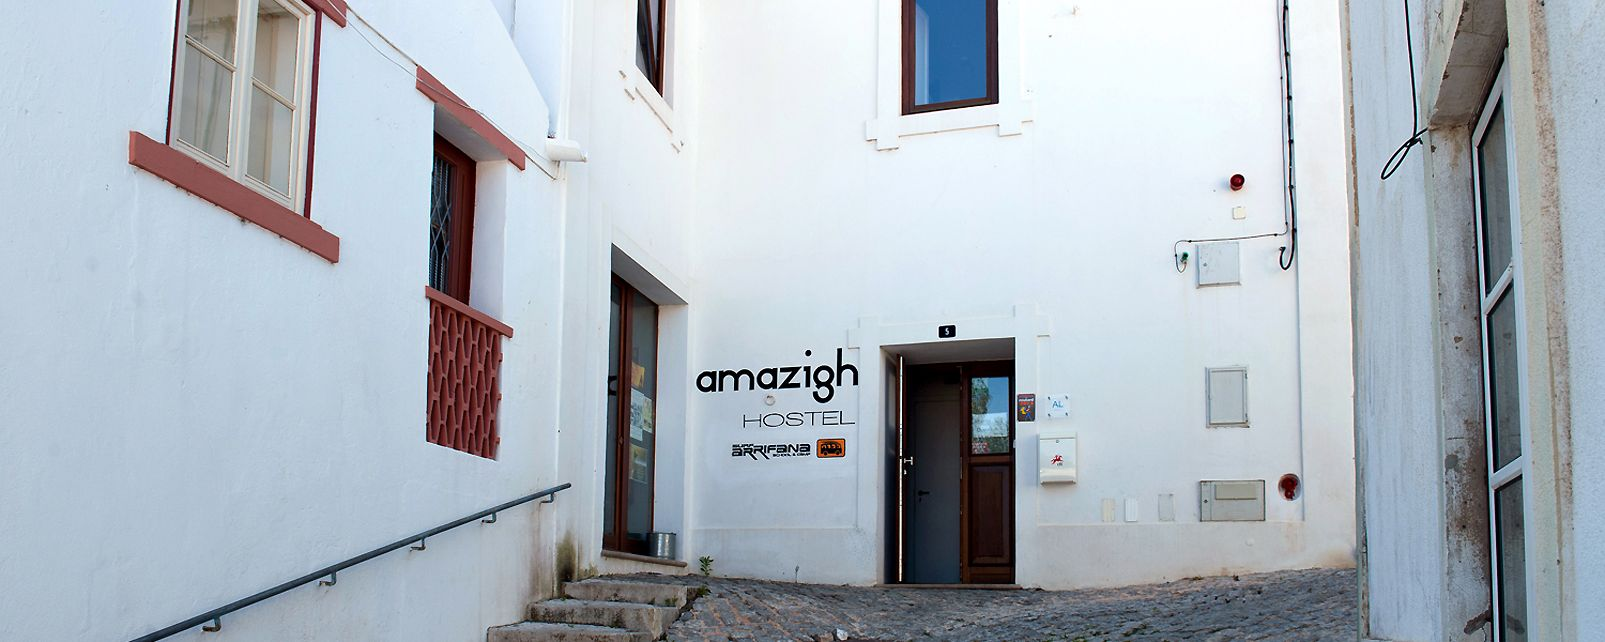 Hotel Amazigh Hostel and Villas